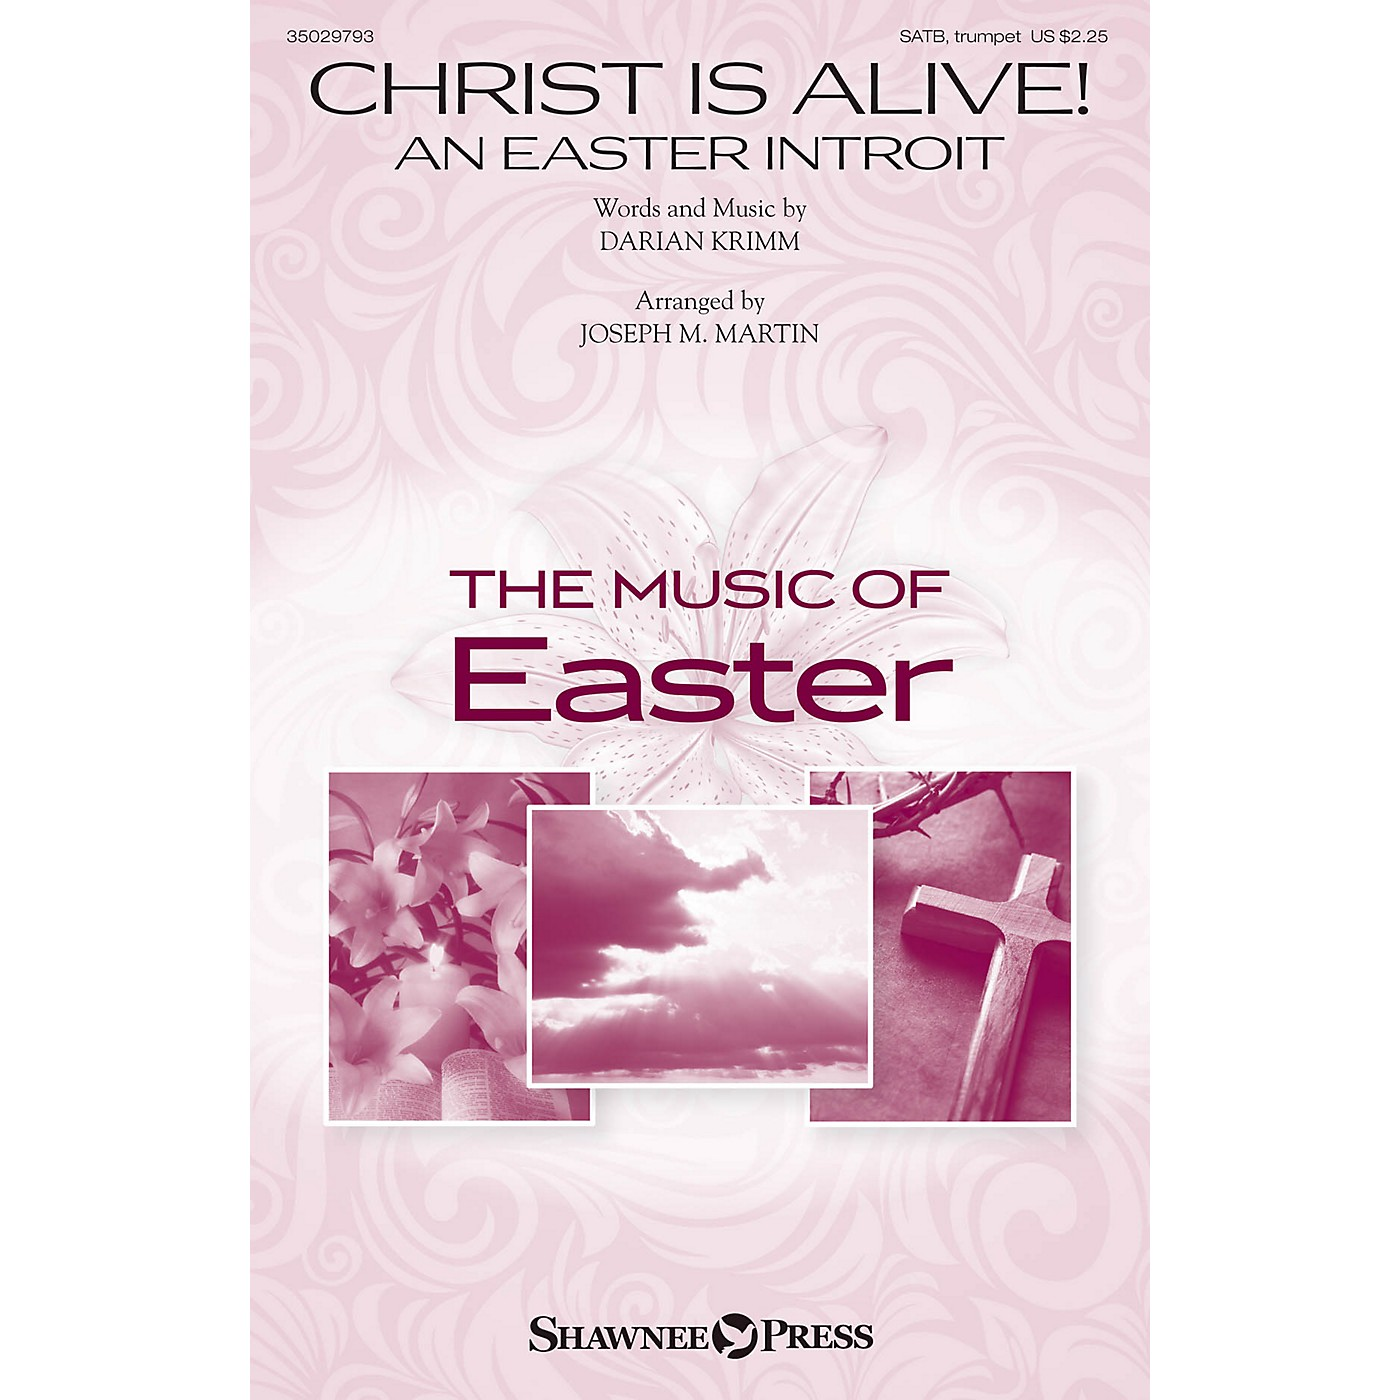 Shawnee Press Christ Is Alive! (An Easter Introit) SATB, TRUMPET arranged by Joseph M. Martin thumbnail